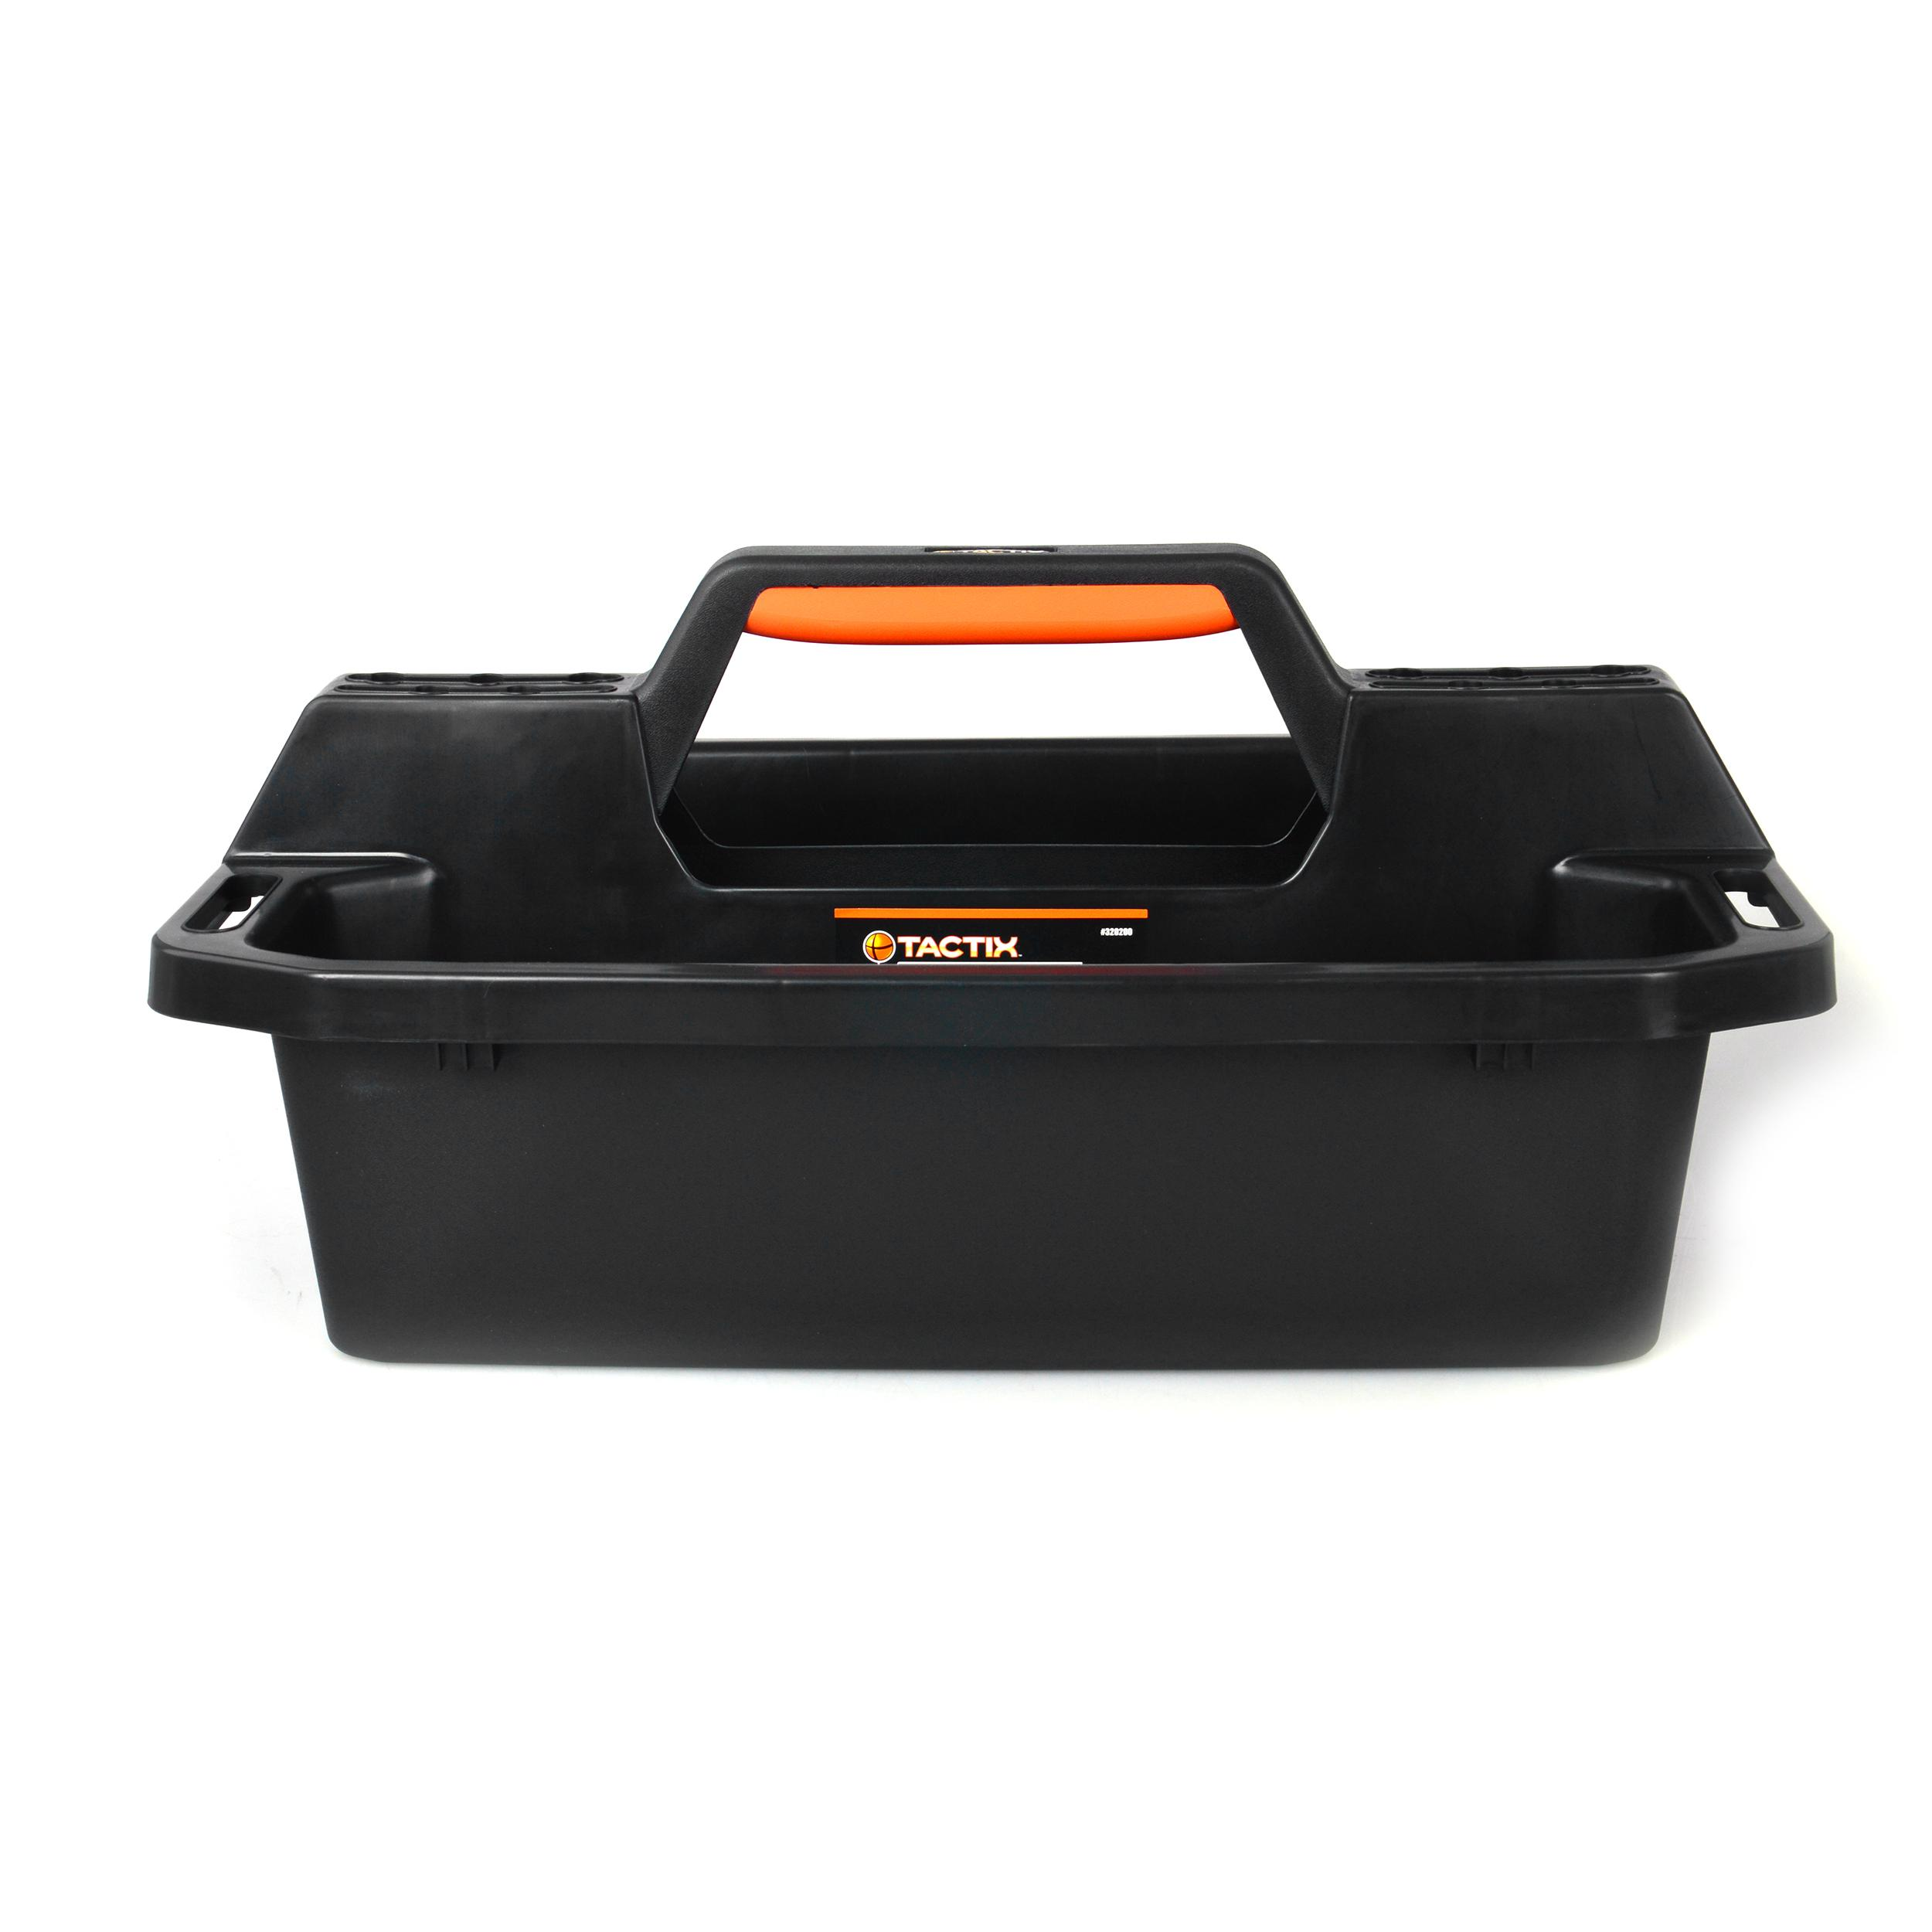 320200 Tactix Plastic Tote /& Caddy Tray